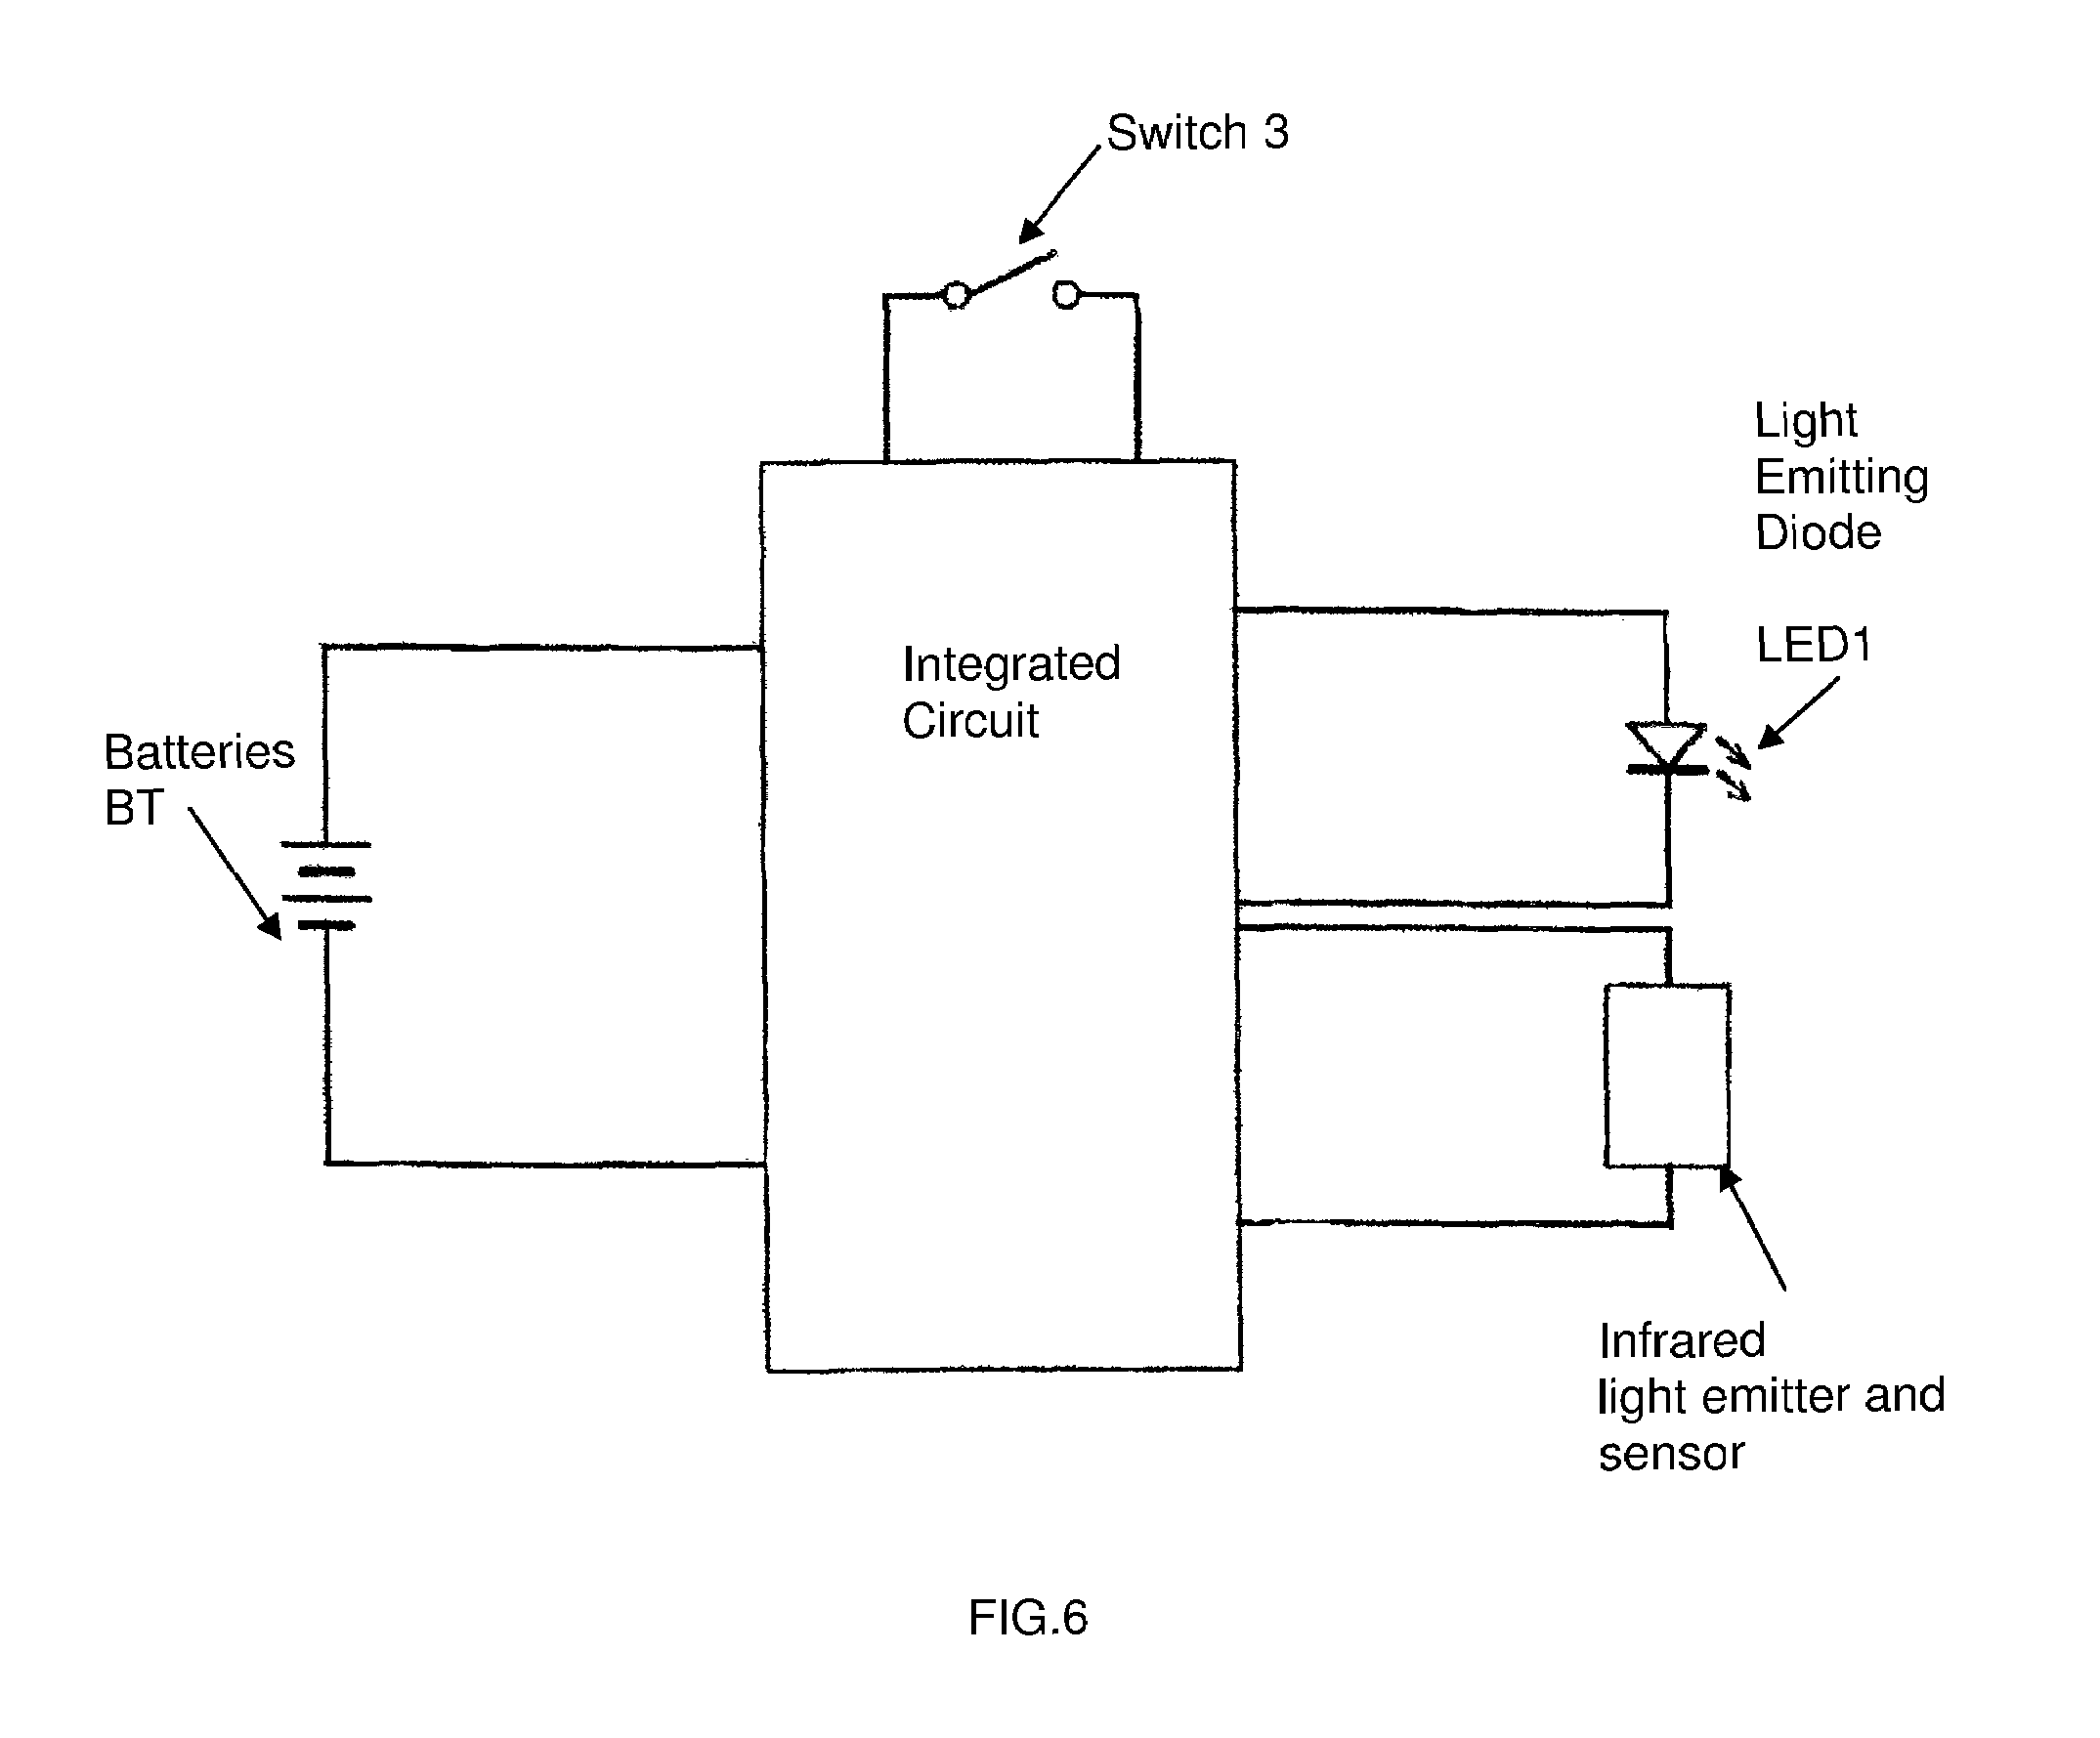 Us7410271 Flashlight With Automatic Light Intensity Led Bulb Google Patente On Wire Battery Circuit Patent Drawing